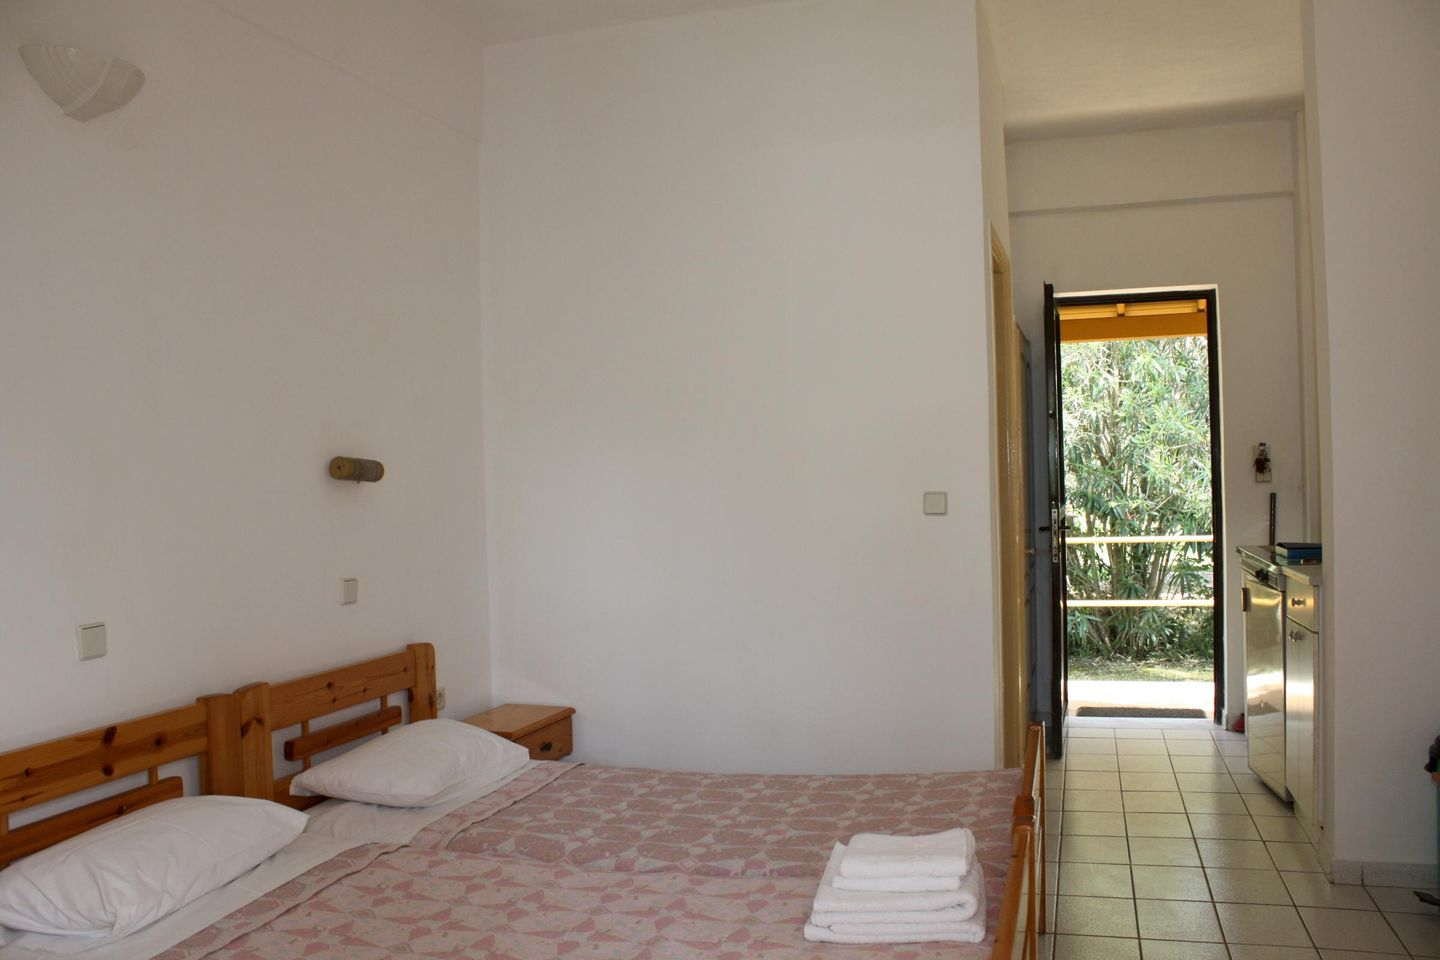 Holiday apartment IRINI-APPARTEMENT (499956), Aghios Petros, Corfu, Ionian Islands, Greece, picture 11